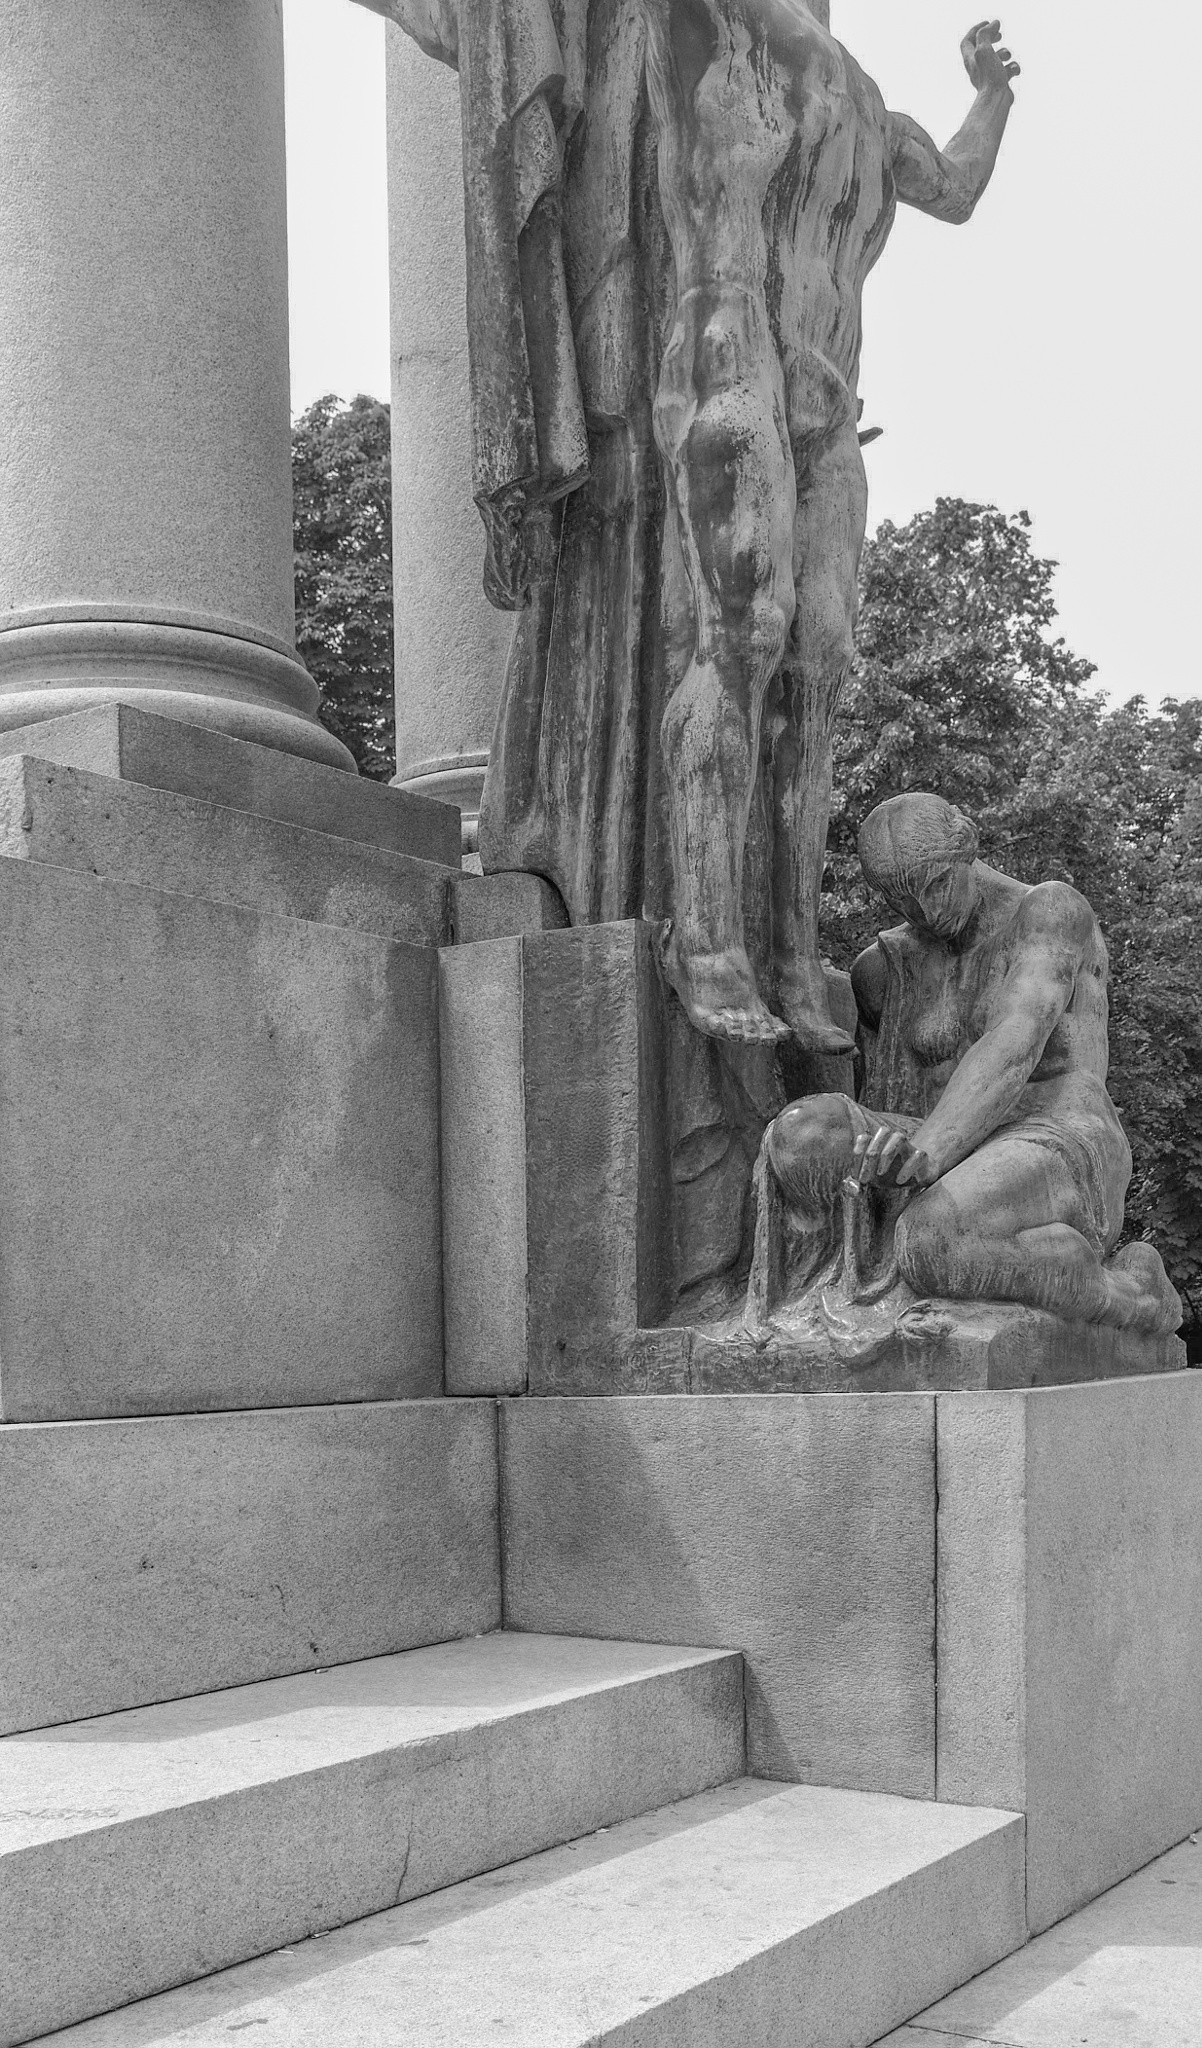 monumento by bcorech